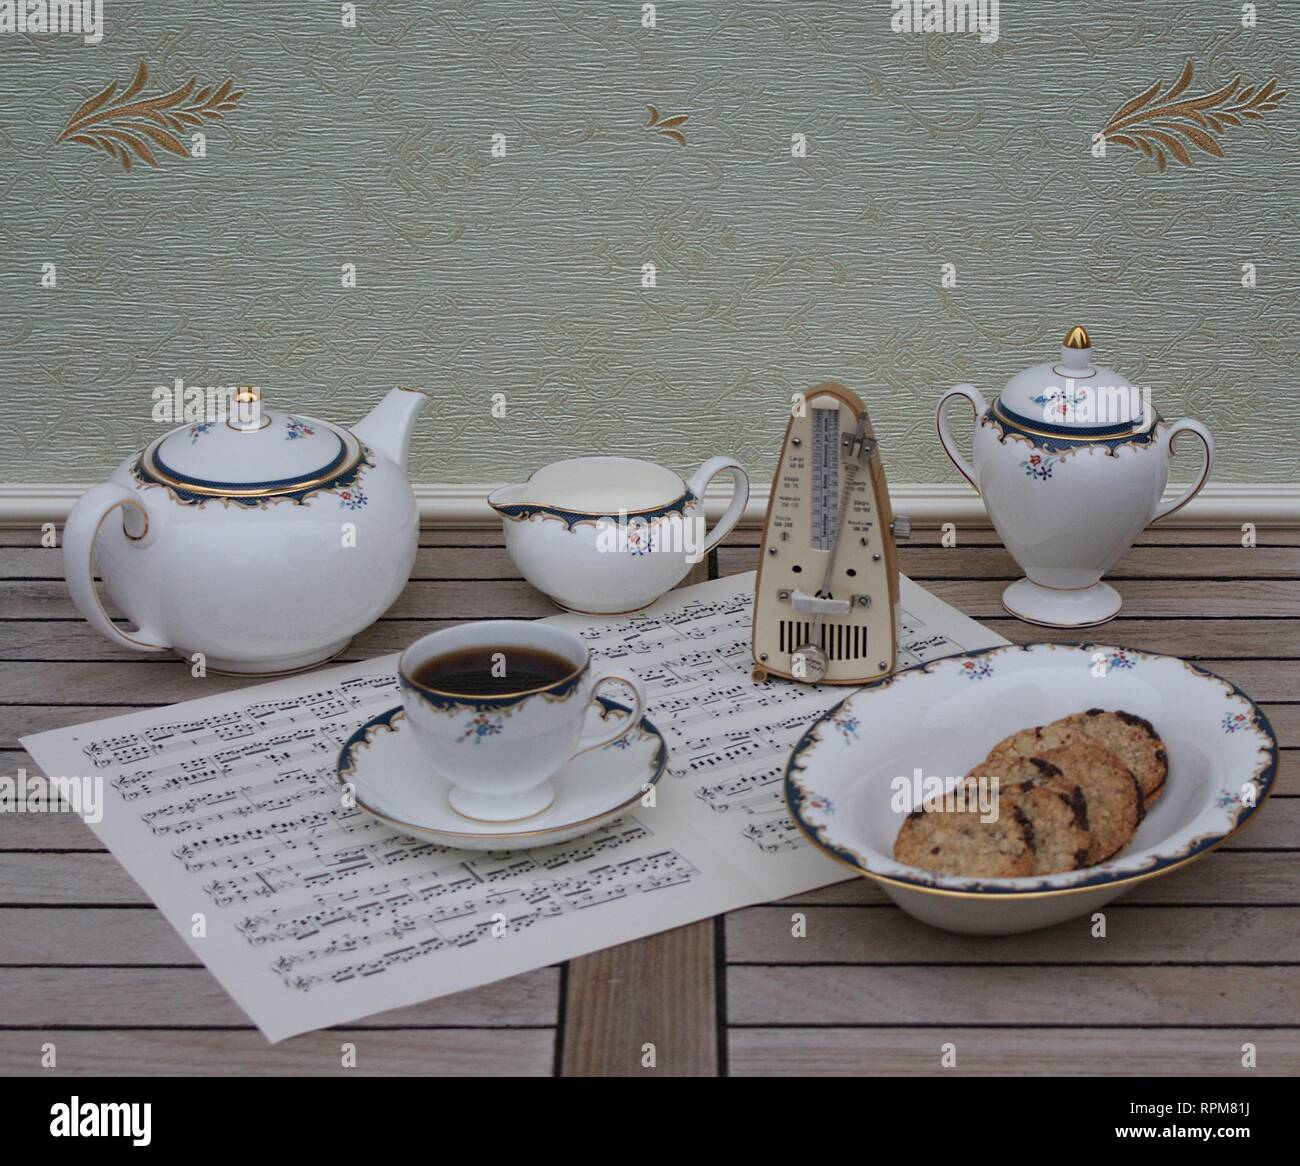 English teacup with saucer, teapot, cream jug, sugar bowl and a cake bowl, fine bone china porcelain, and a metronome for music on a sheet of music - Stock Image